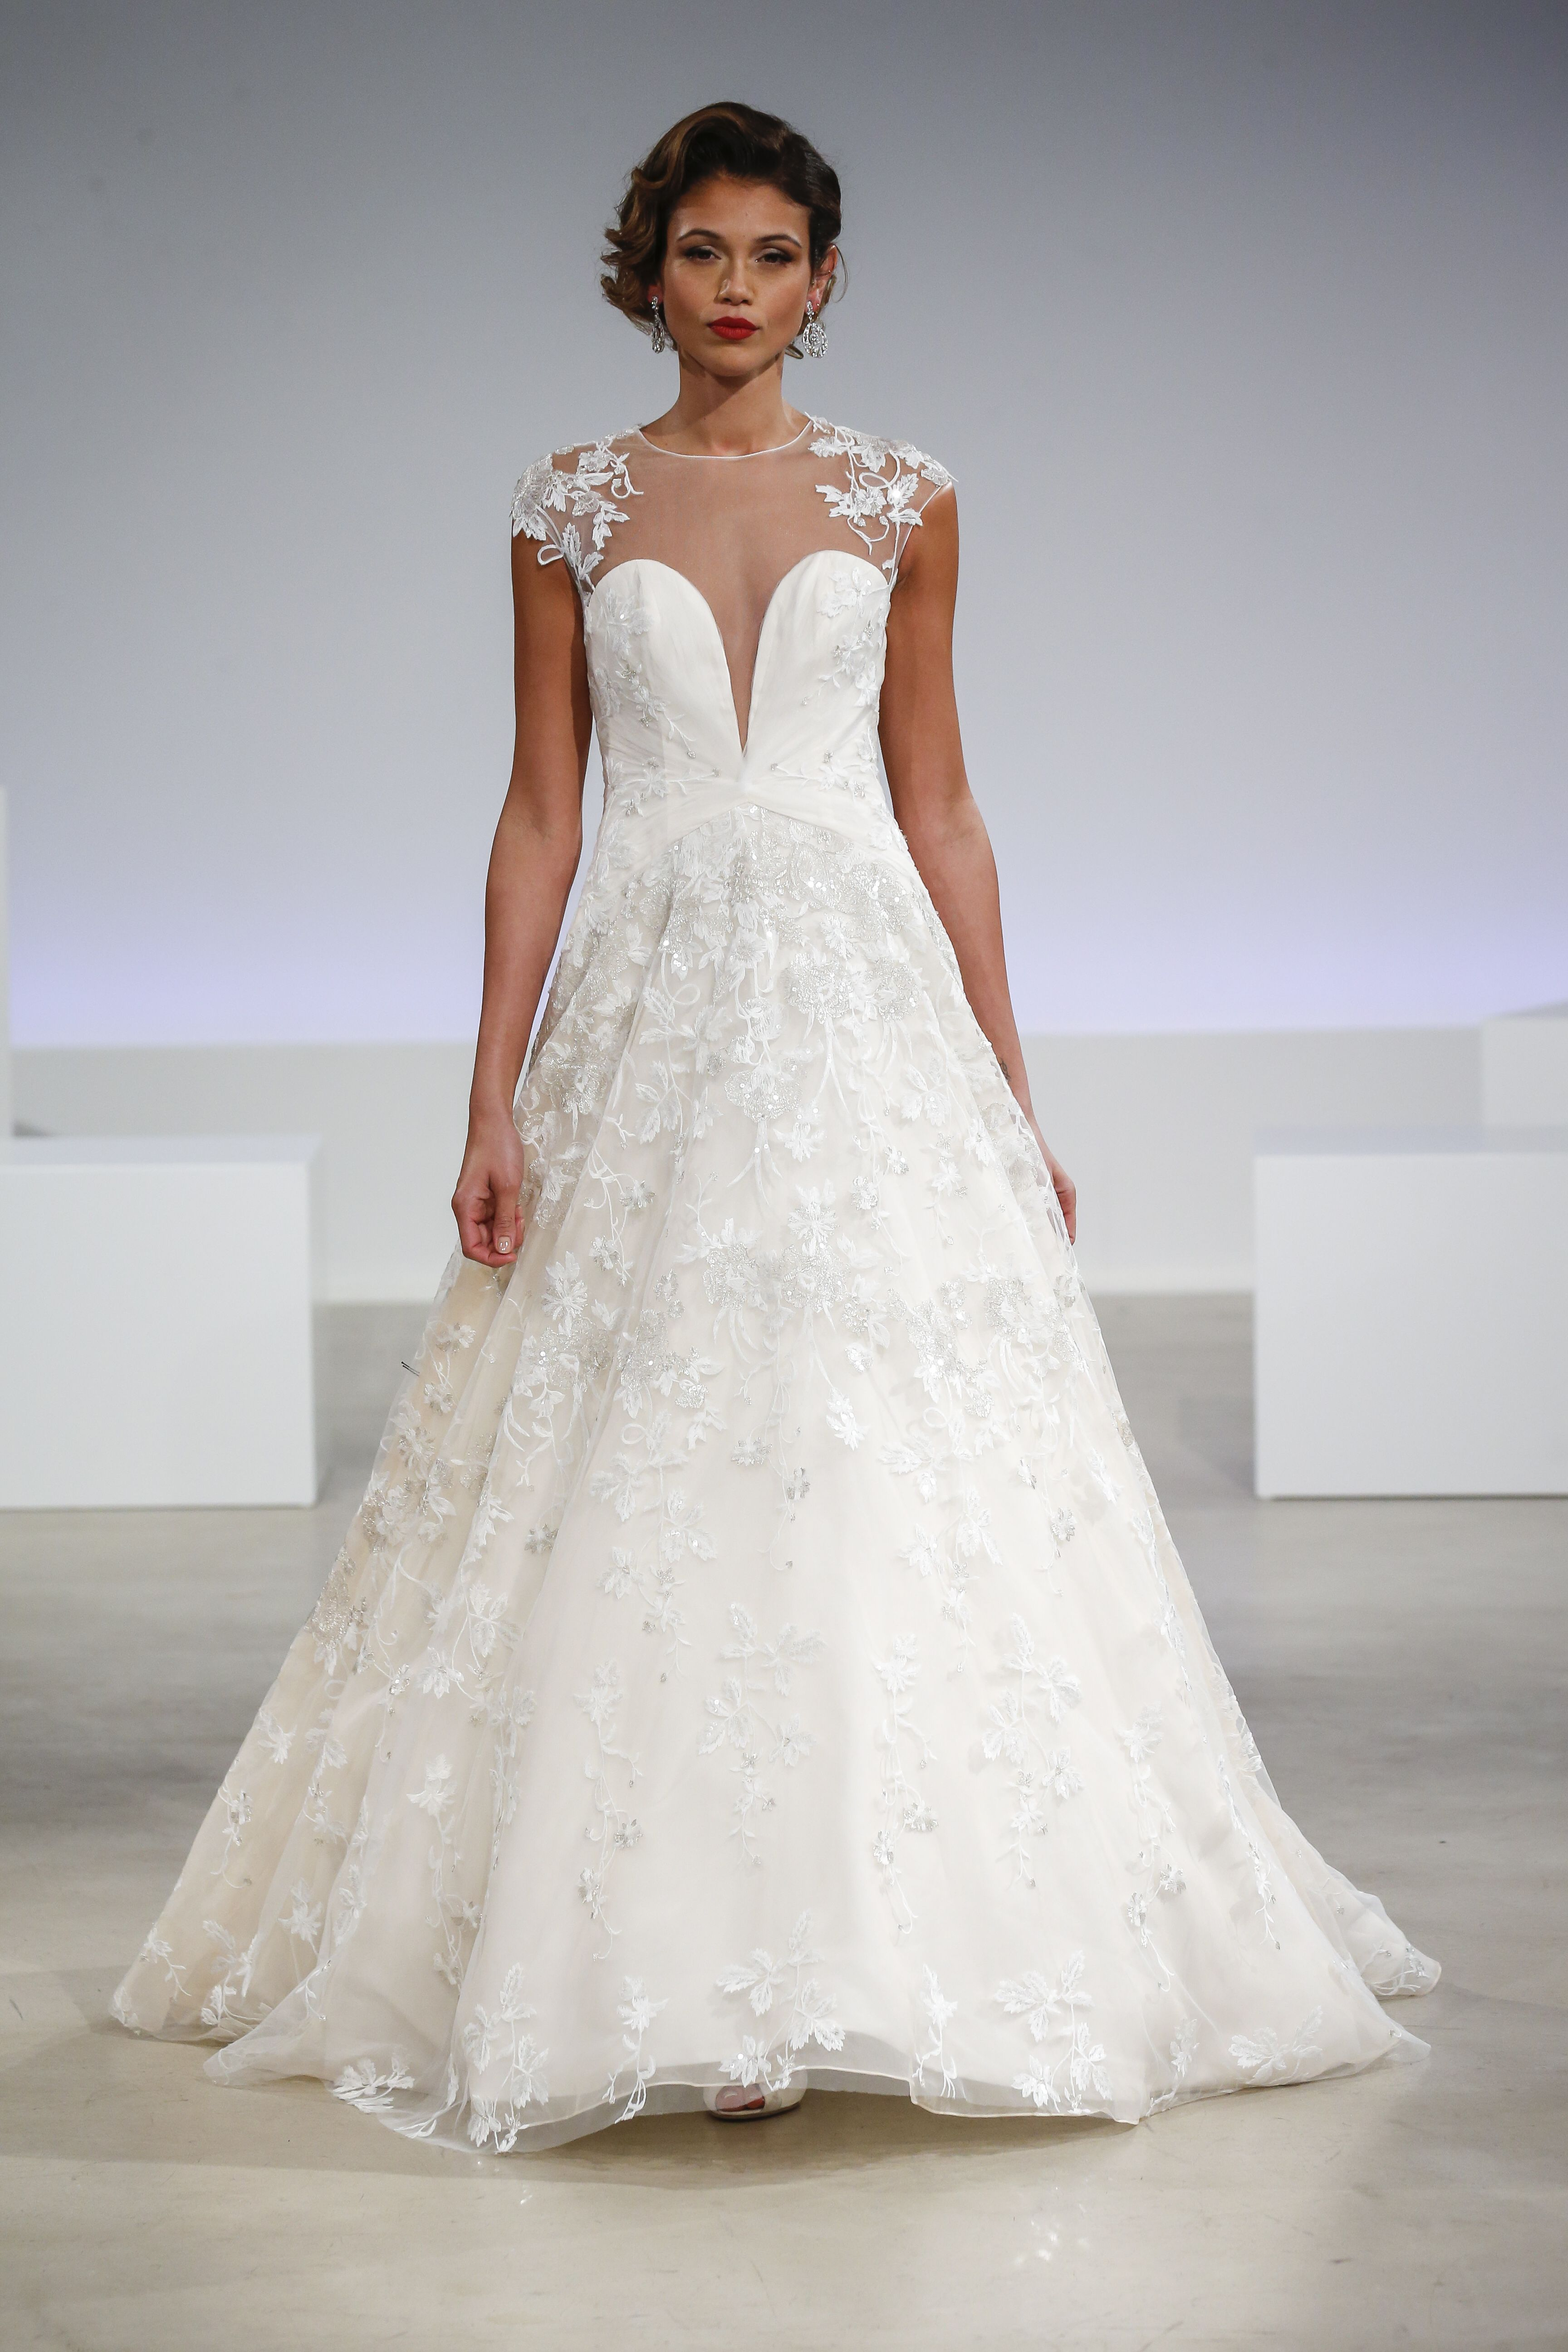 Aline Wedding Gown With A Sheer Illusion Neckline Embroidered Cap Sleeves Skirt And Plunging